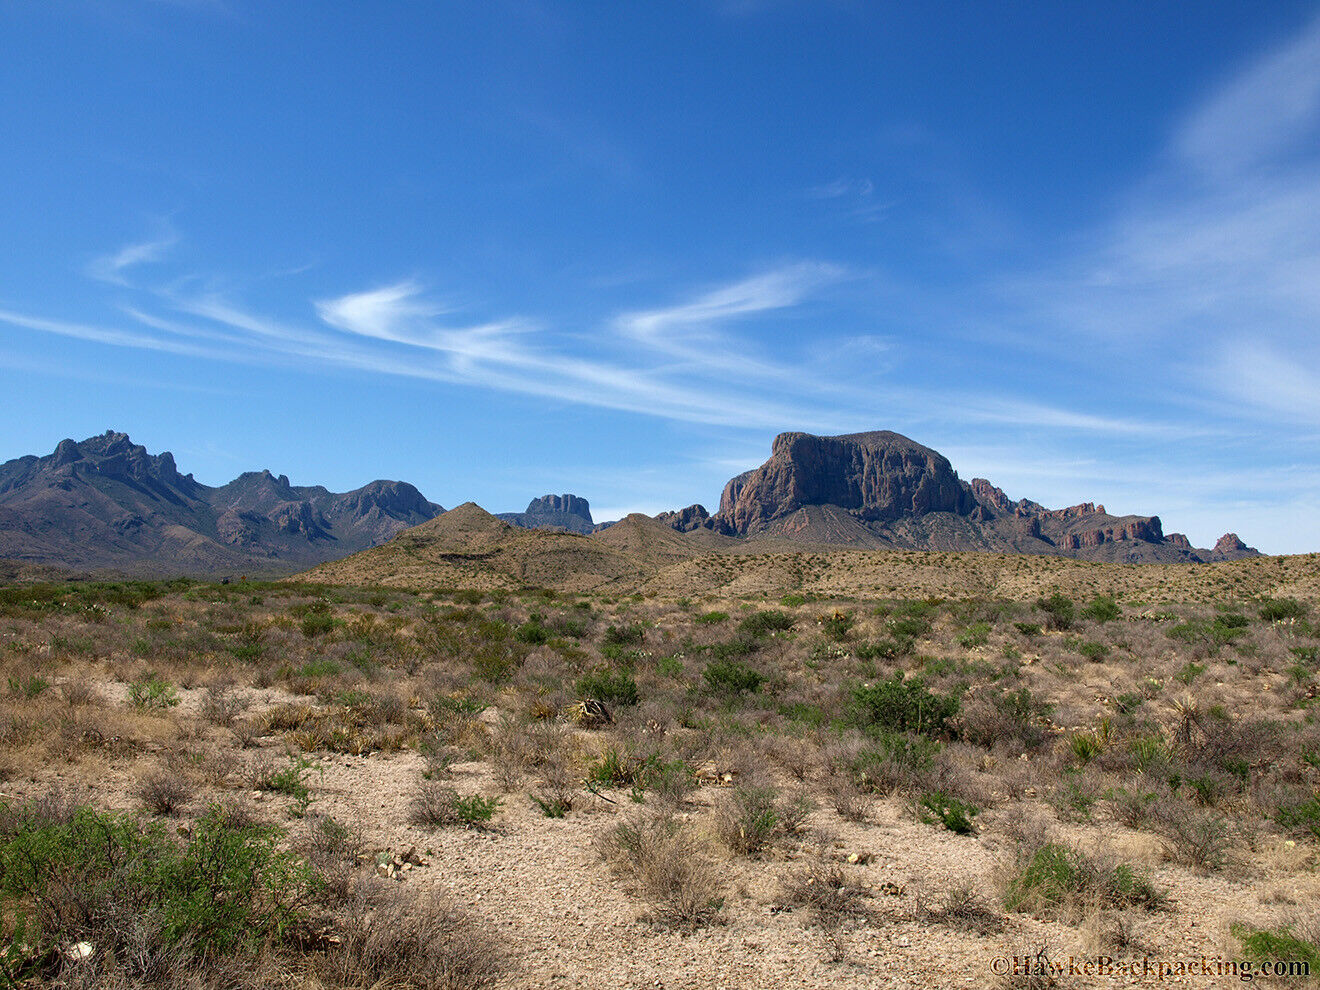 10 ACRES TX BORDER BIG BEND STATE PARK 330 FT X 1320 FT ROADS VIEWS LOW DOC FEE  - $1,995.00